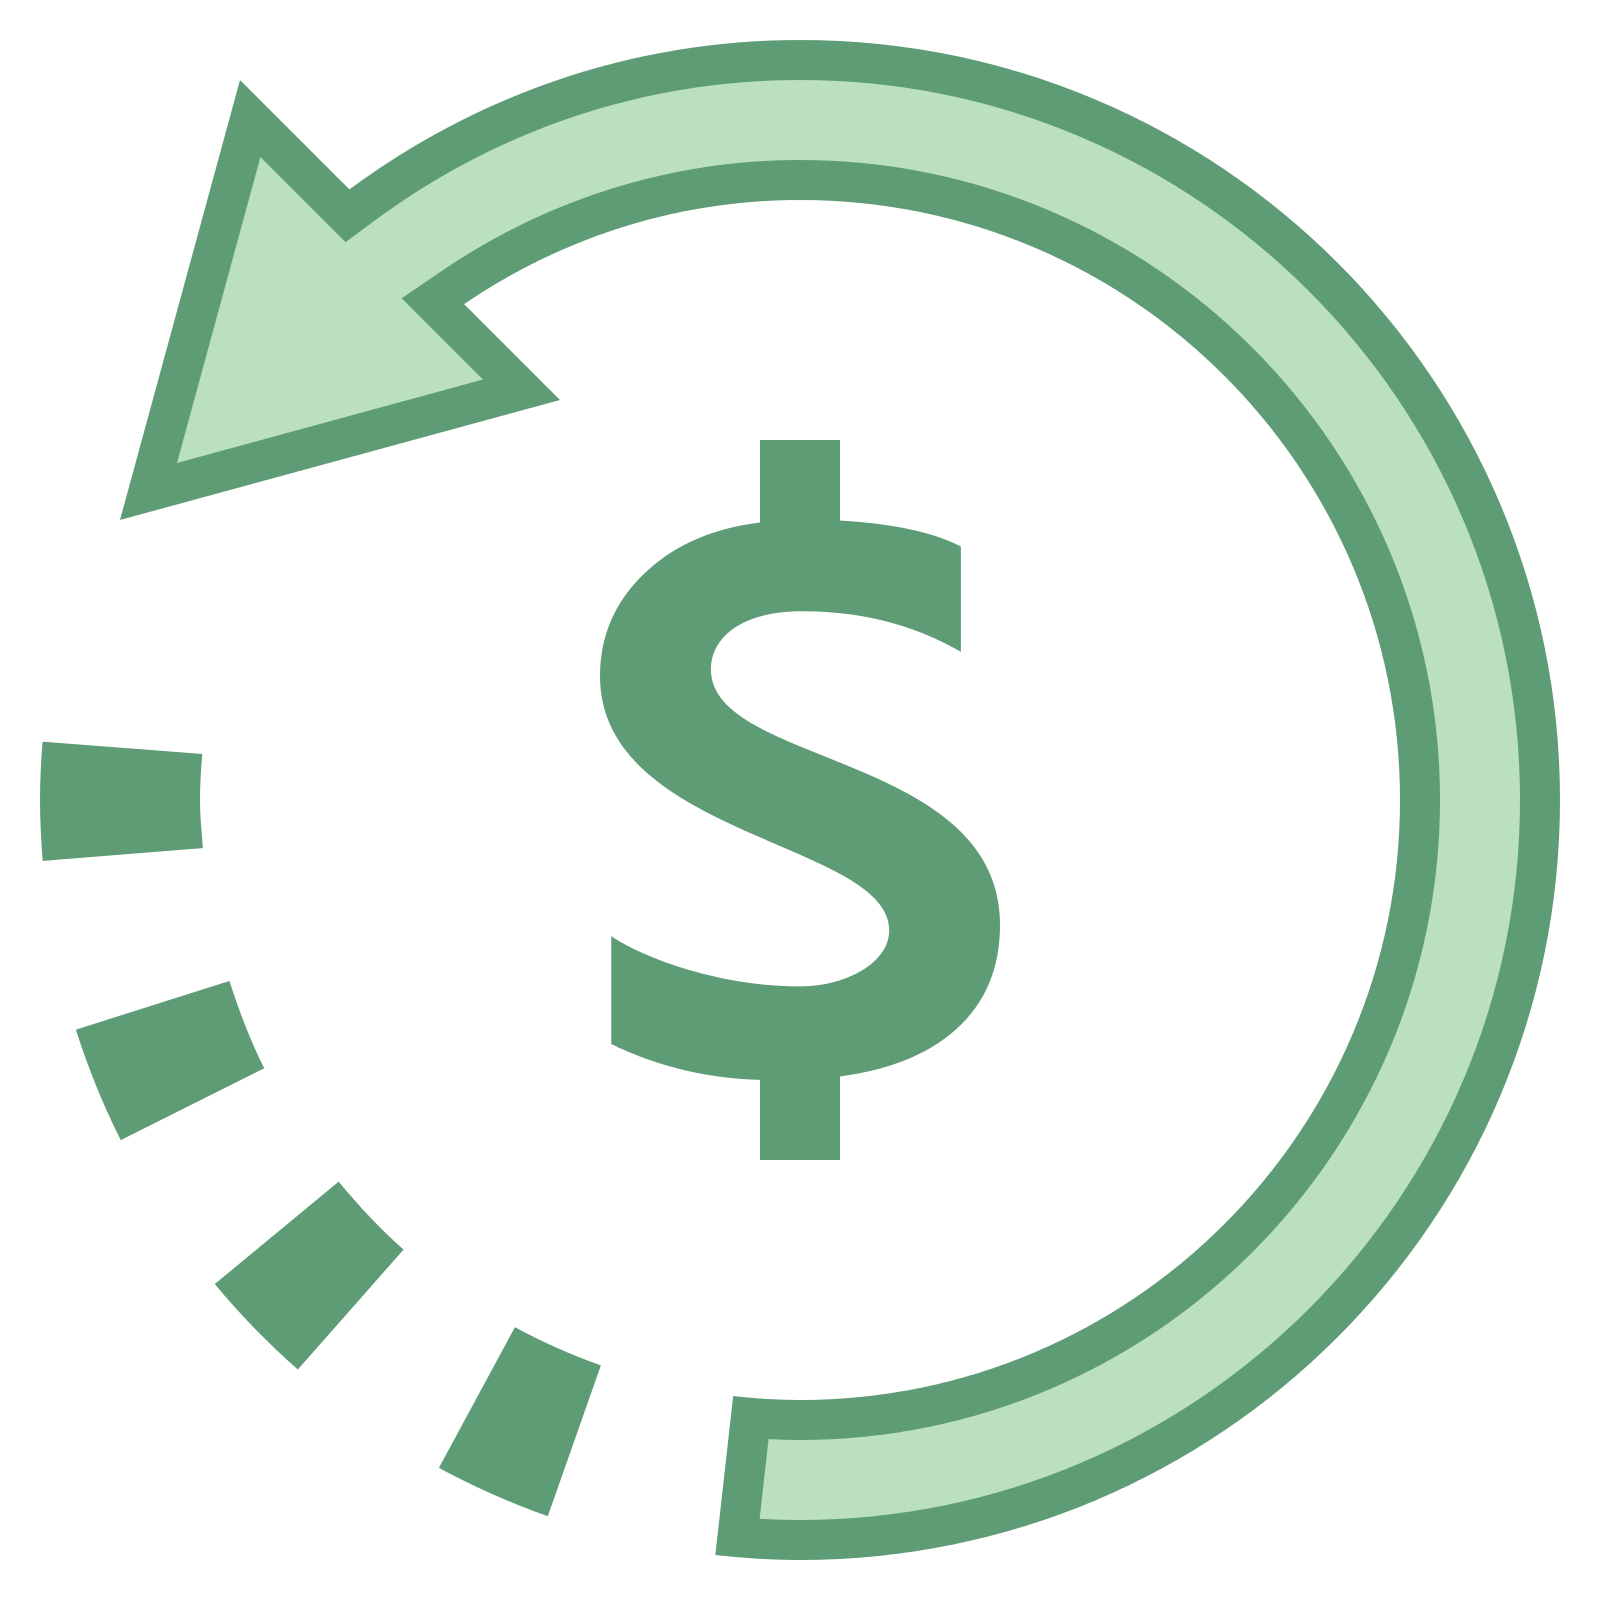 Refund 2 Icon - Refund, Transparent background PNG HD thumbnail